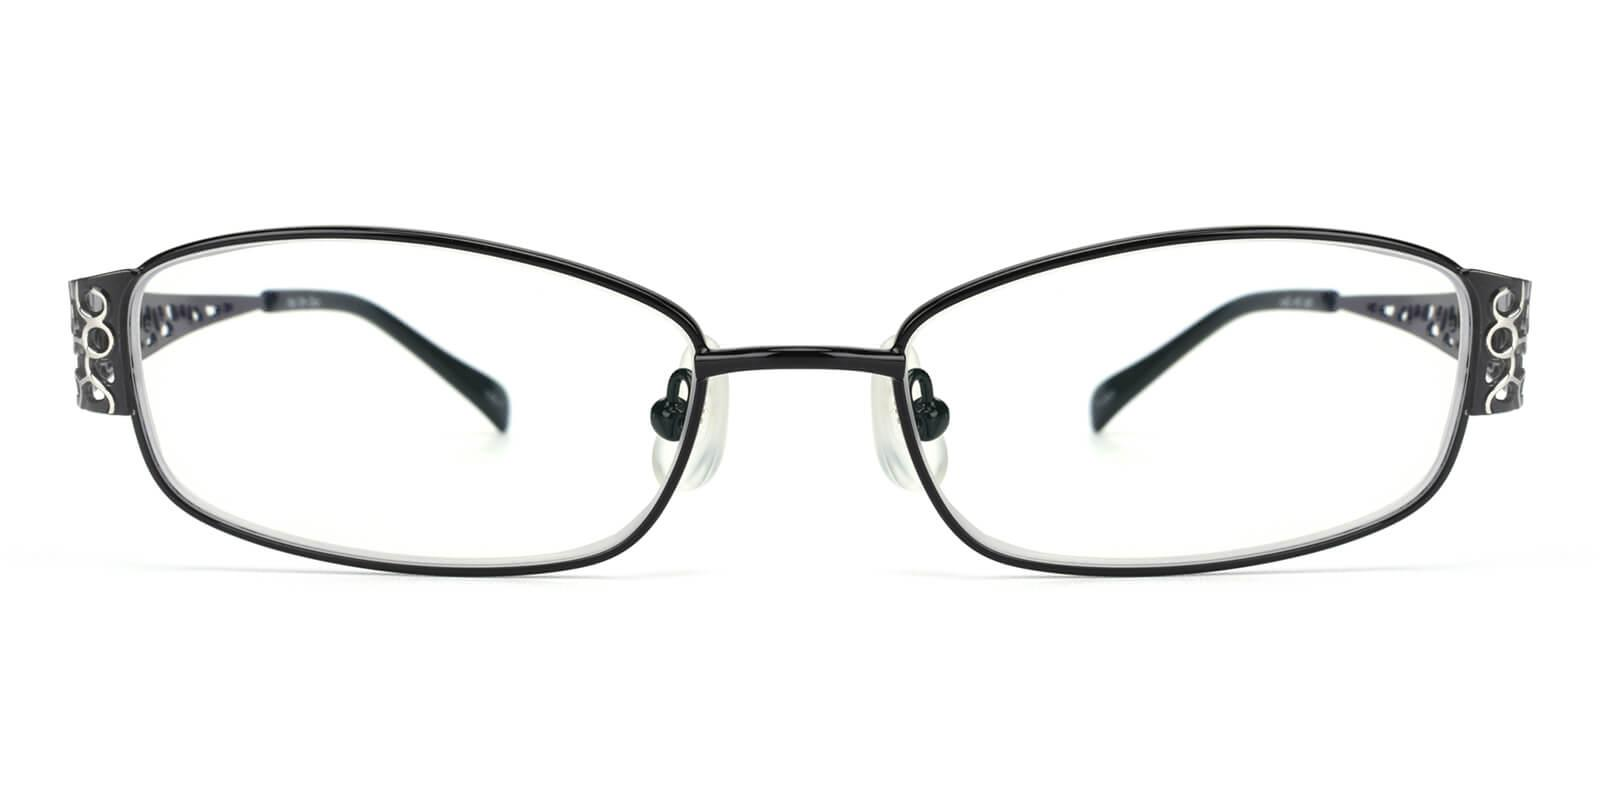 Hollowing-Black-Rectangle-Metal-Eyeglasses-additional2